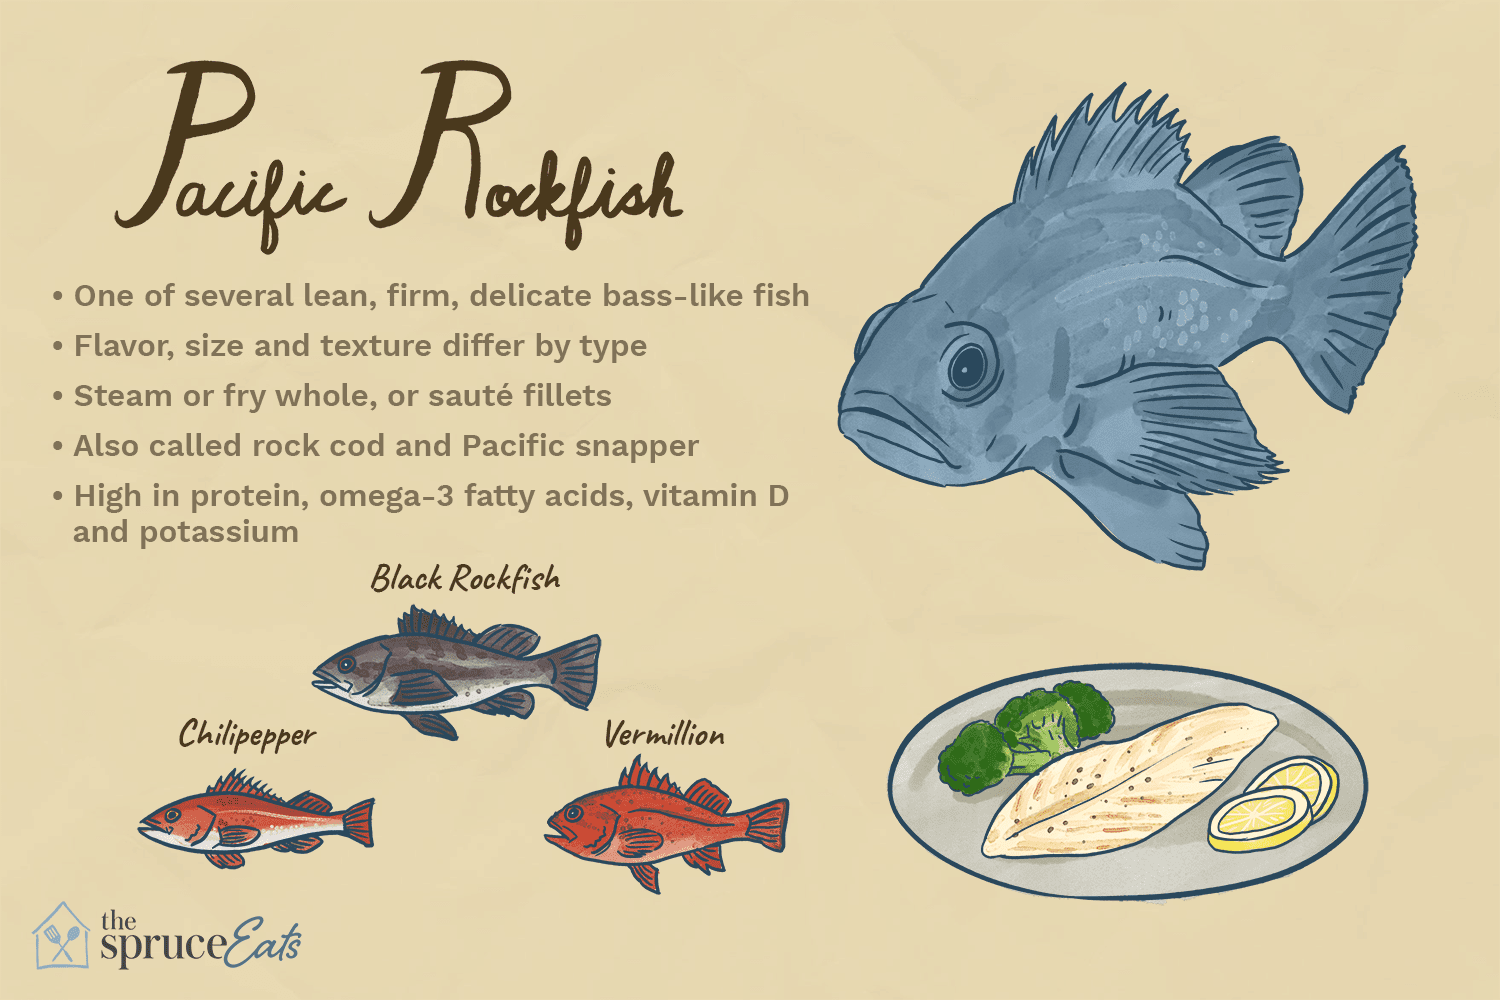 What Is Pacific Rockfish and How Is It Used?